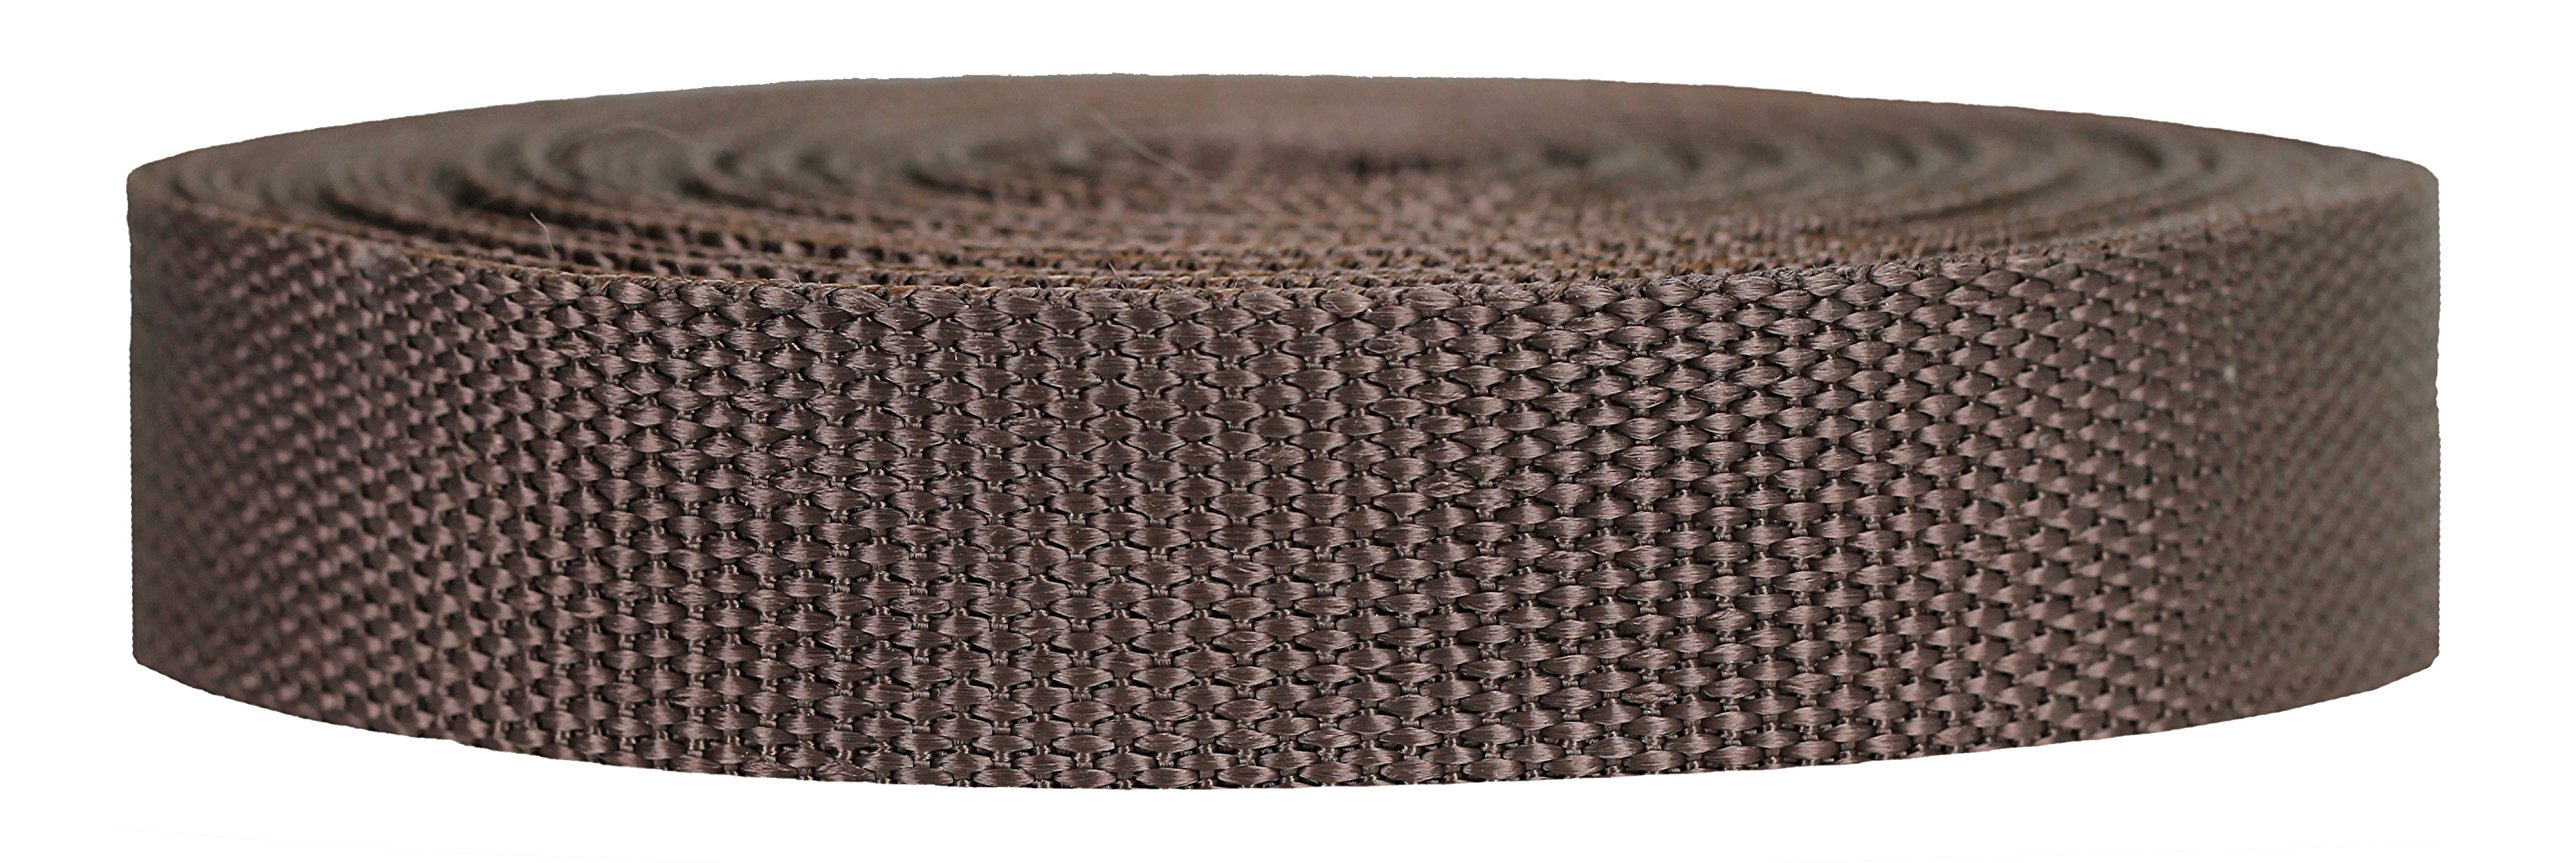 Strapworks Heavyweight Polypropylene Webbing - Heavy Duty Poly Strapping for Outdoor DIY Gear Repair, 1 Inch x 10 Yards - Brown